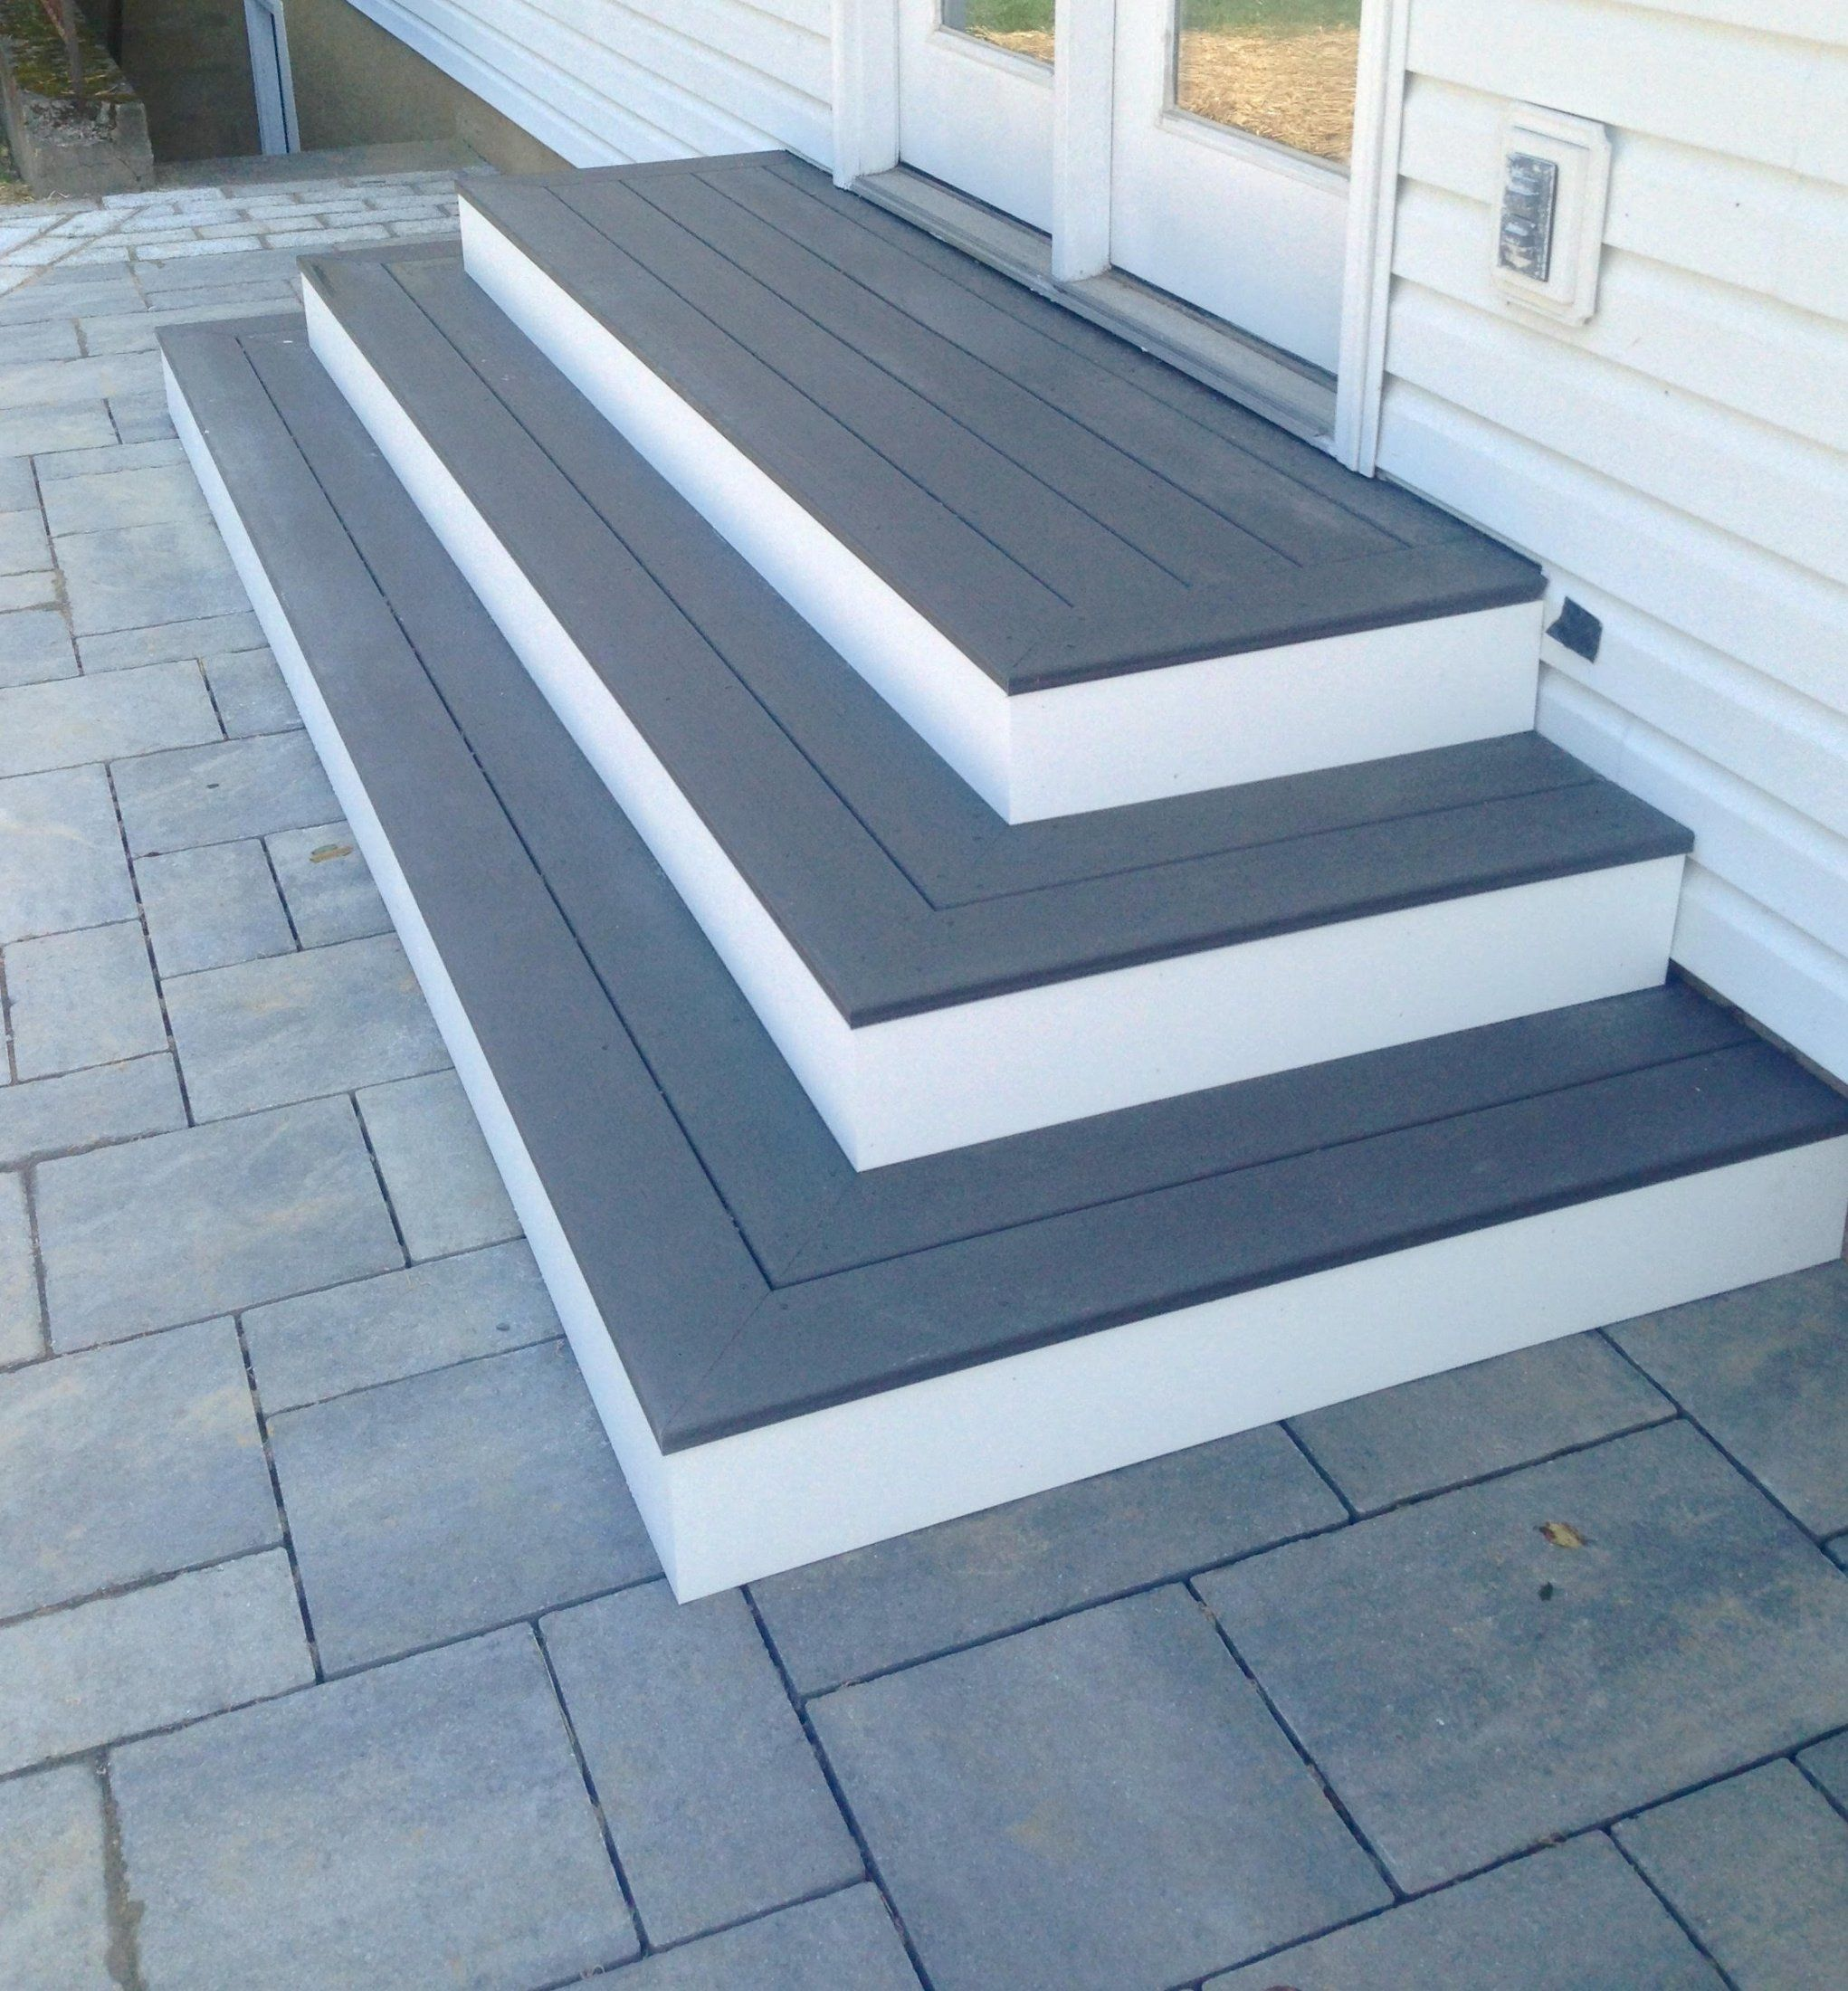 Best Decks And Structures Patio Stairs Patio Deck Designs 400 x 300